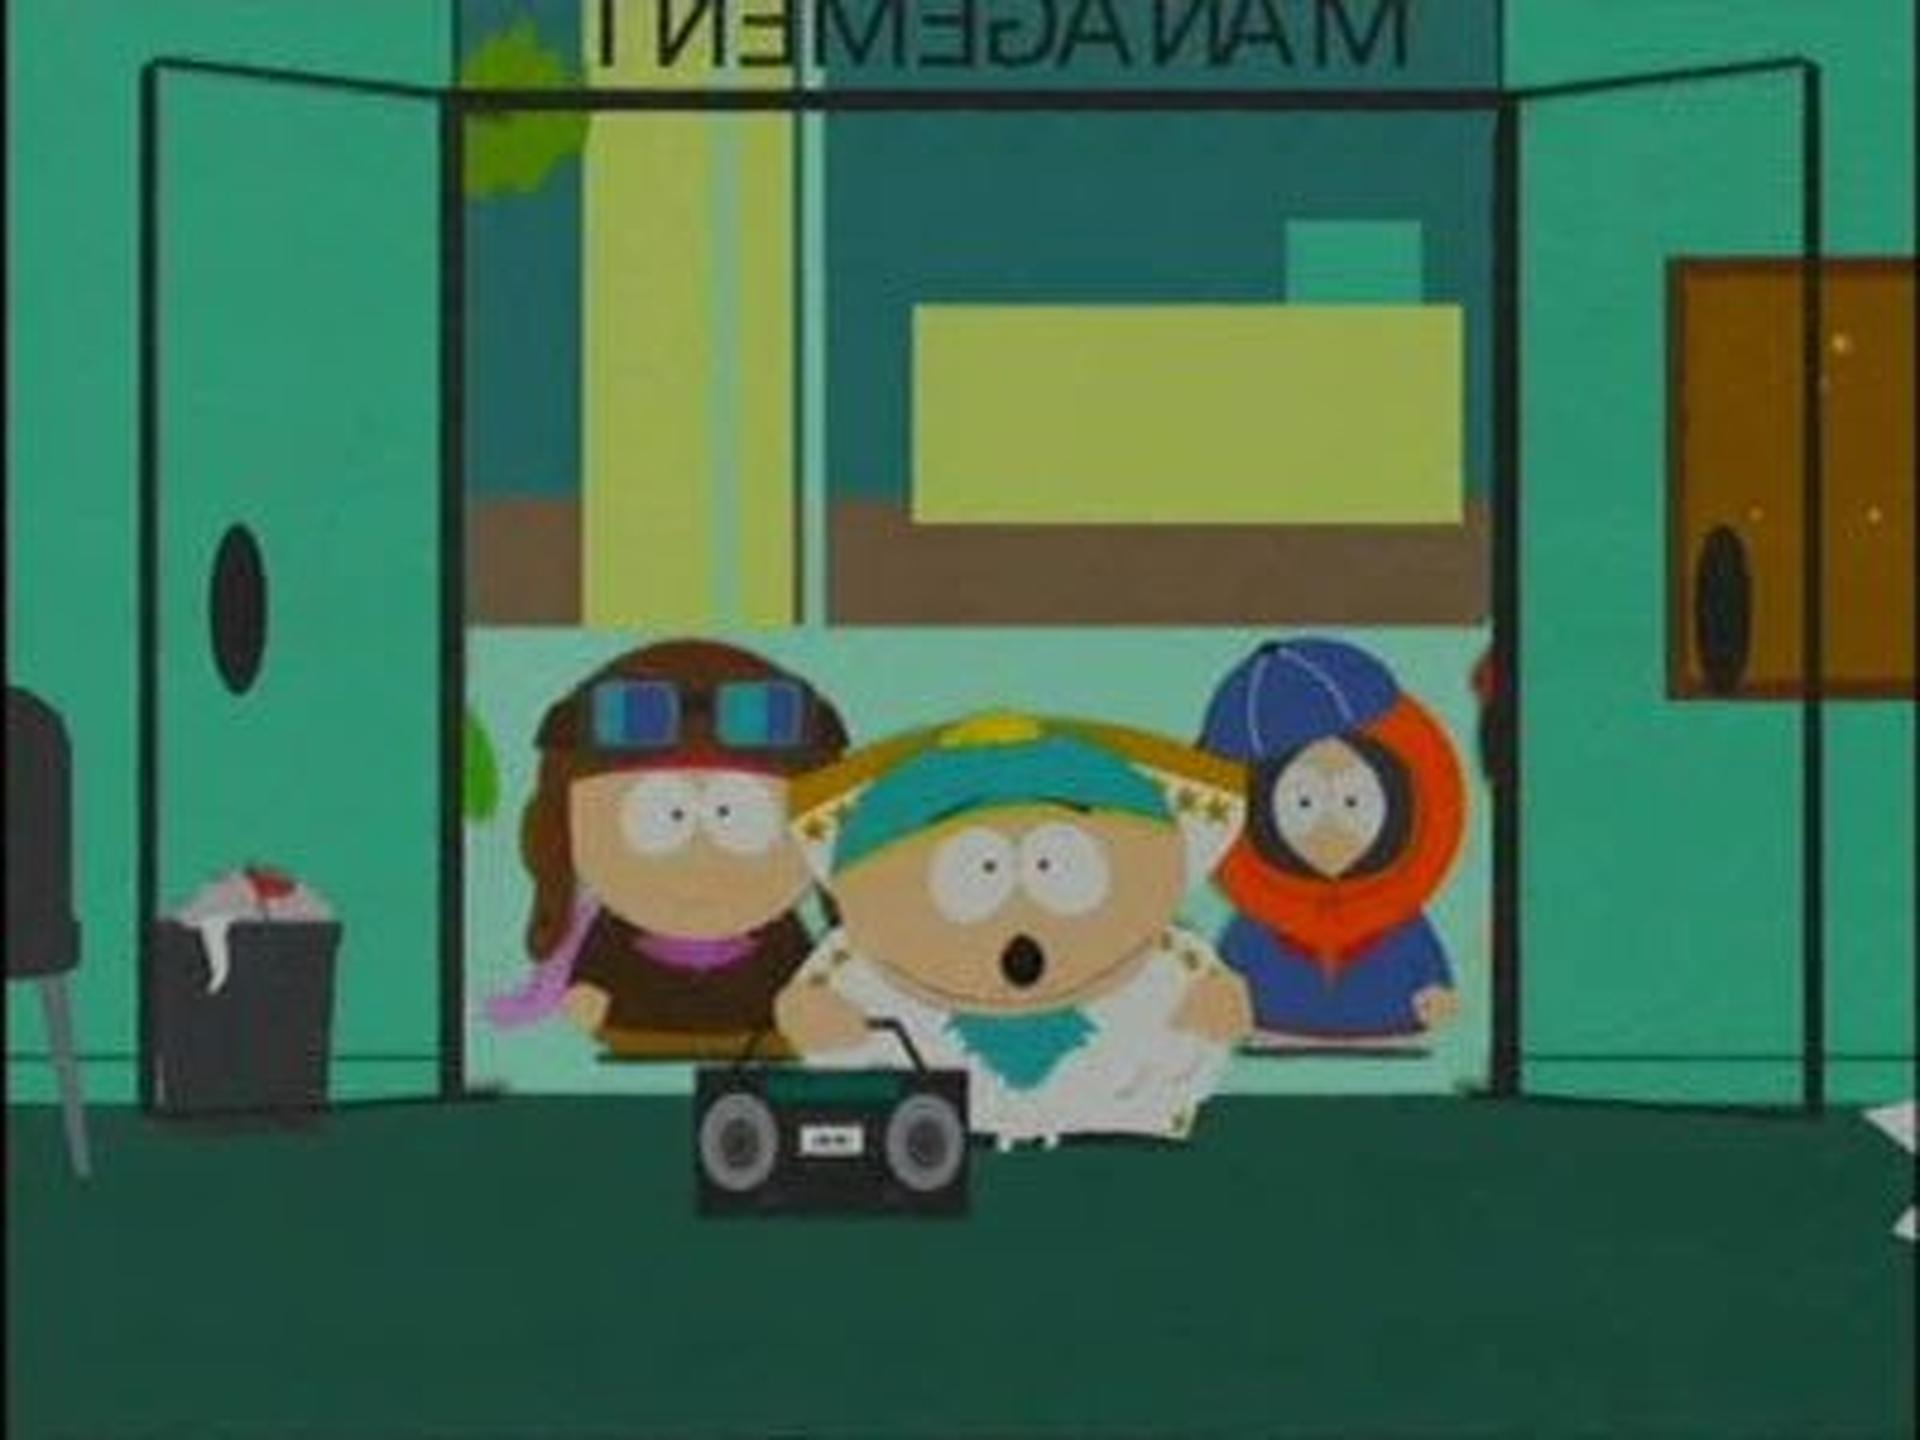 south parks episode 201 summary Sons a witches summary: south park season 21, episode 6: at the annual halloween get together, a witch casts a spell that terrorizes everyone in south park.